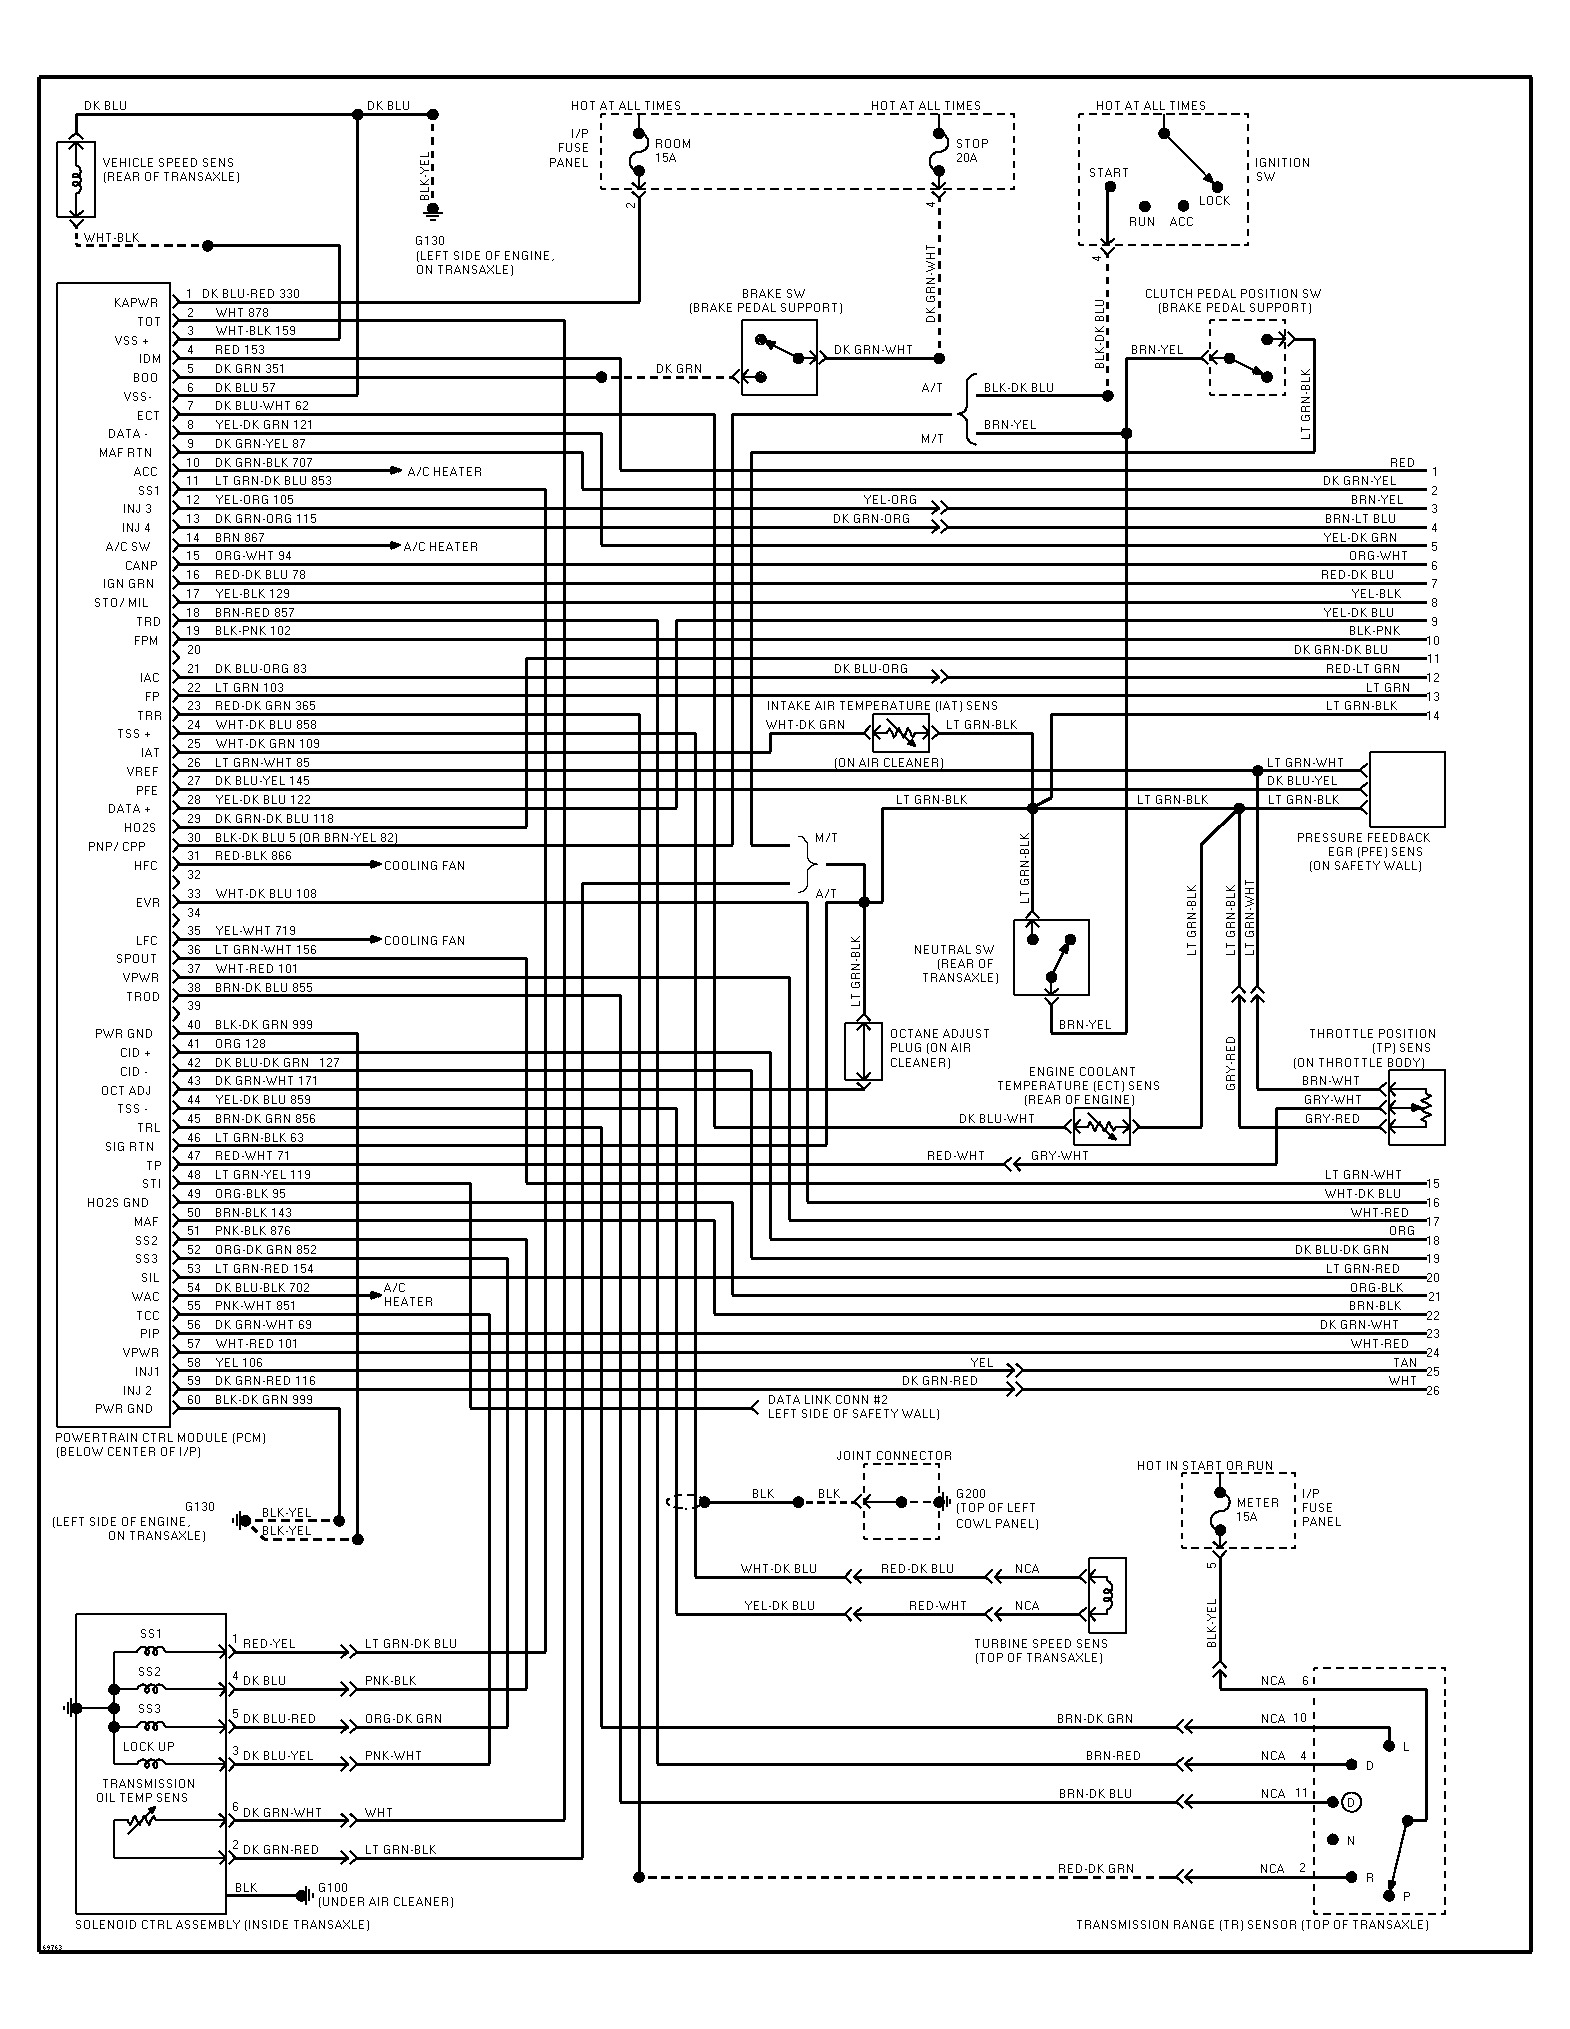 original 1995 ford escort wiring diagram i need to find a color coded 1998 ford escort wiring diagram at bayanpartner.co